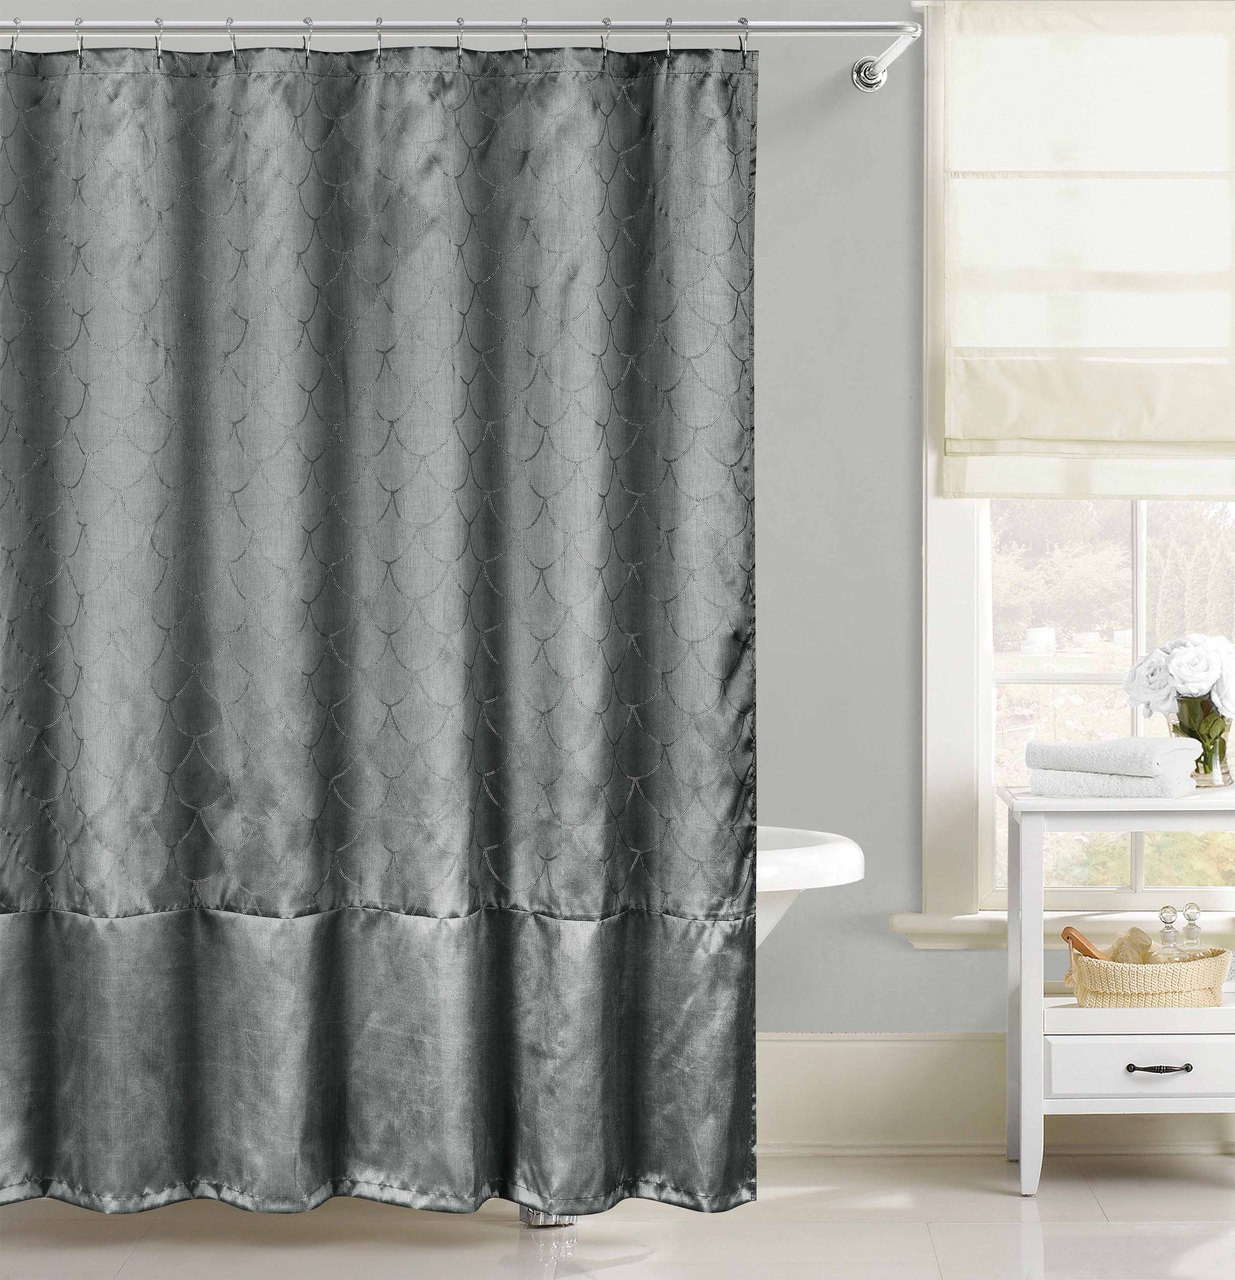 Beau Gray Faux Silk Fabric Shower Curtain With Metallic Silver Raised Pin Dots